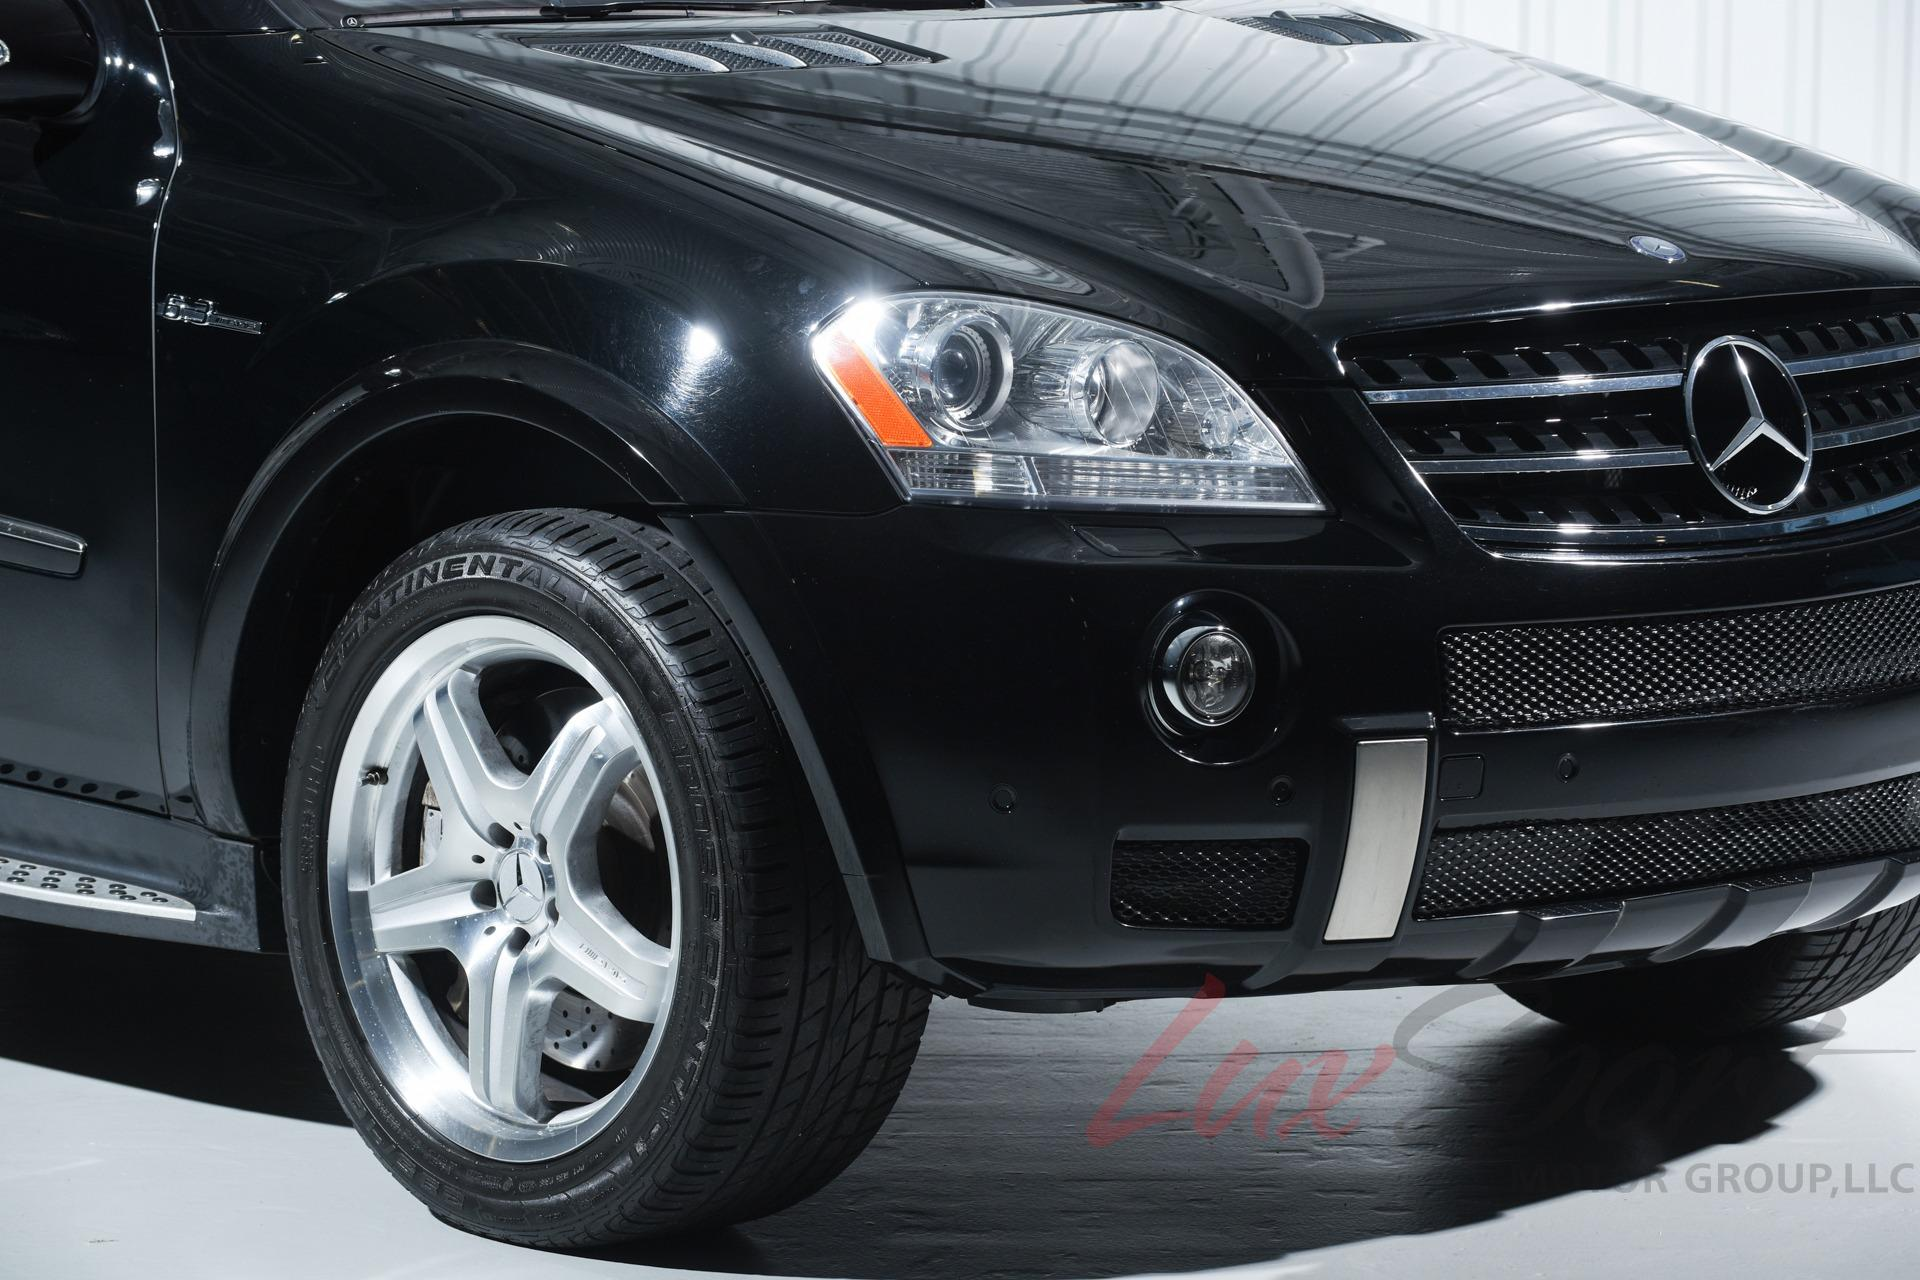 2007 mercedes benz ml63 amg ml 63 amg stock 2007110 for for Mercedes benz ml 63 amg